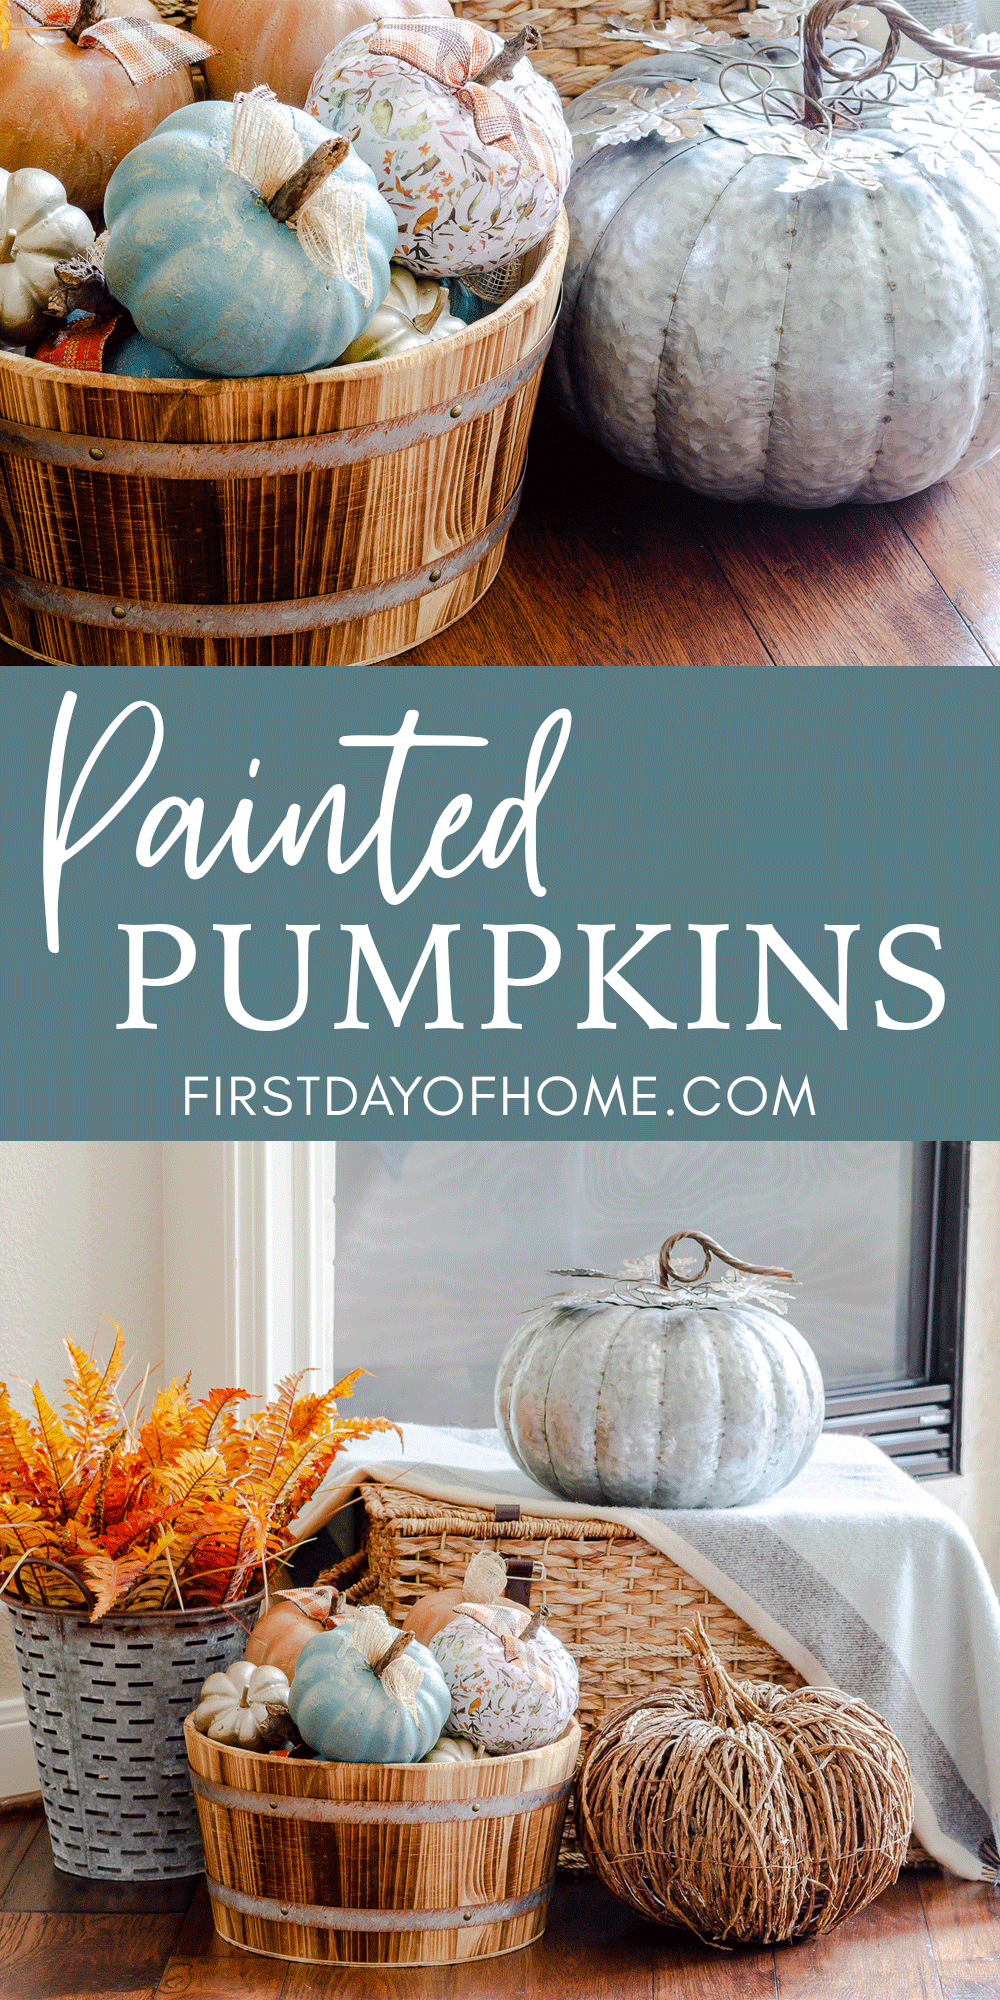 Painted pumpkins in bushel barrel on display by fireplace